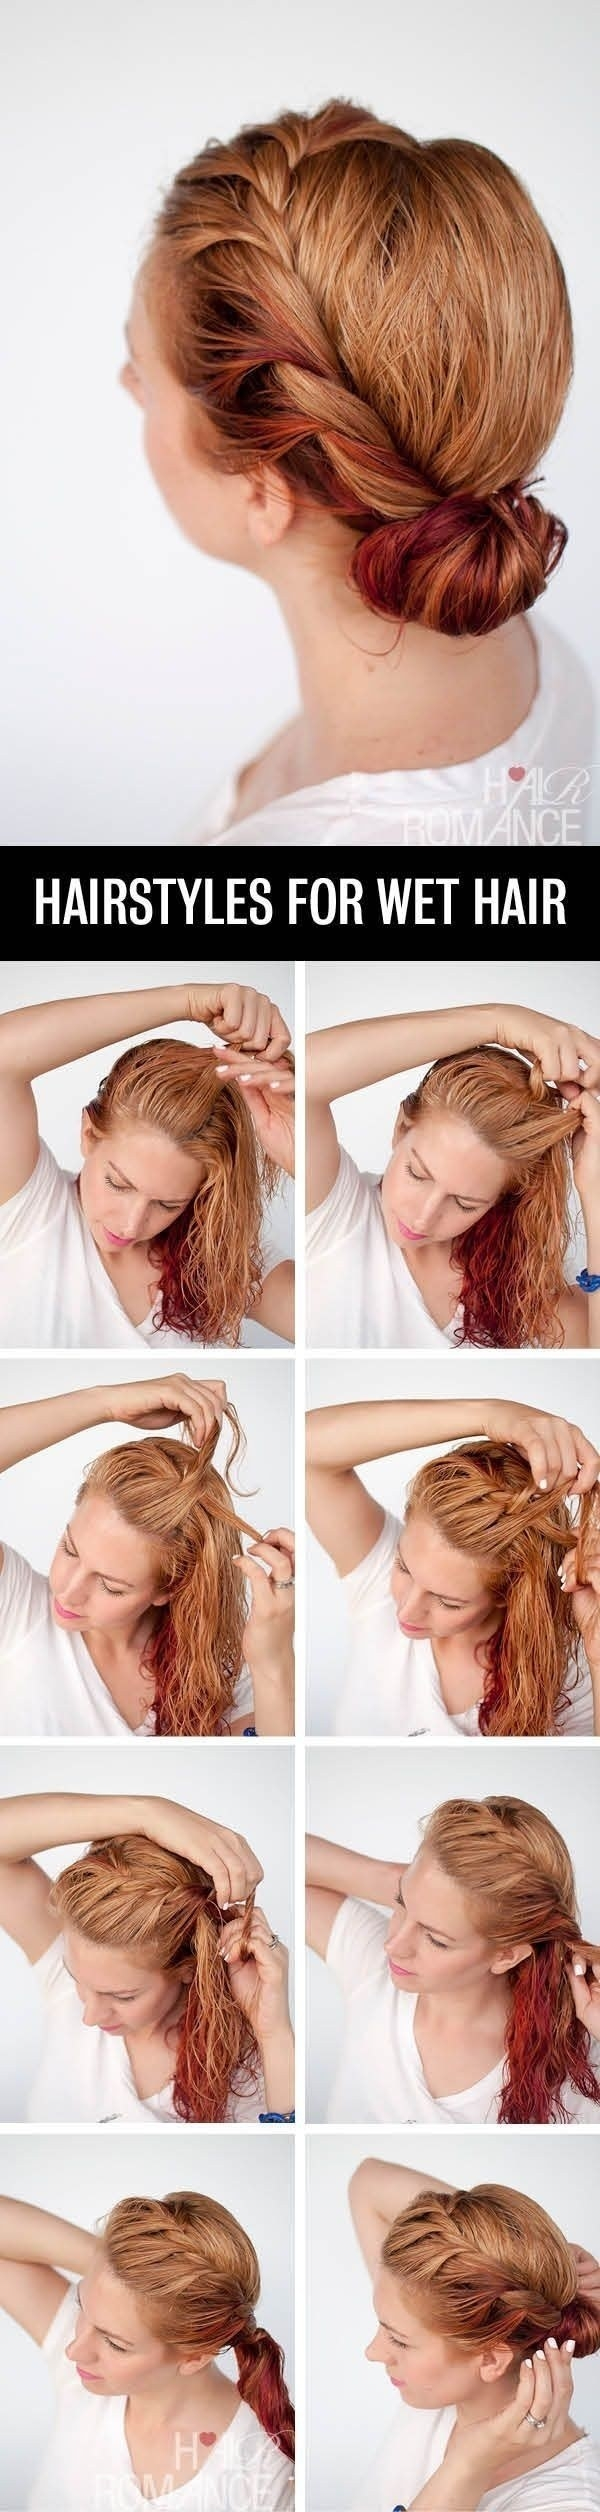 Running so late that your hair is still wet from the shower? Just crown braid or rope twist wet hair and roll it into a bun.